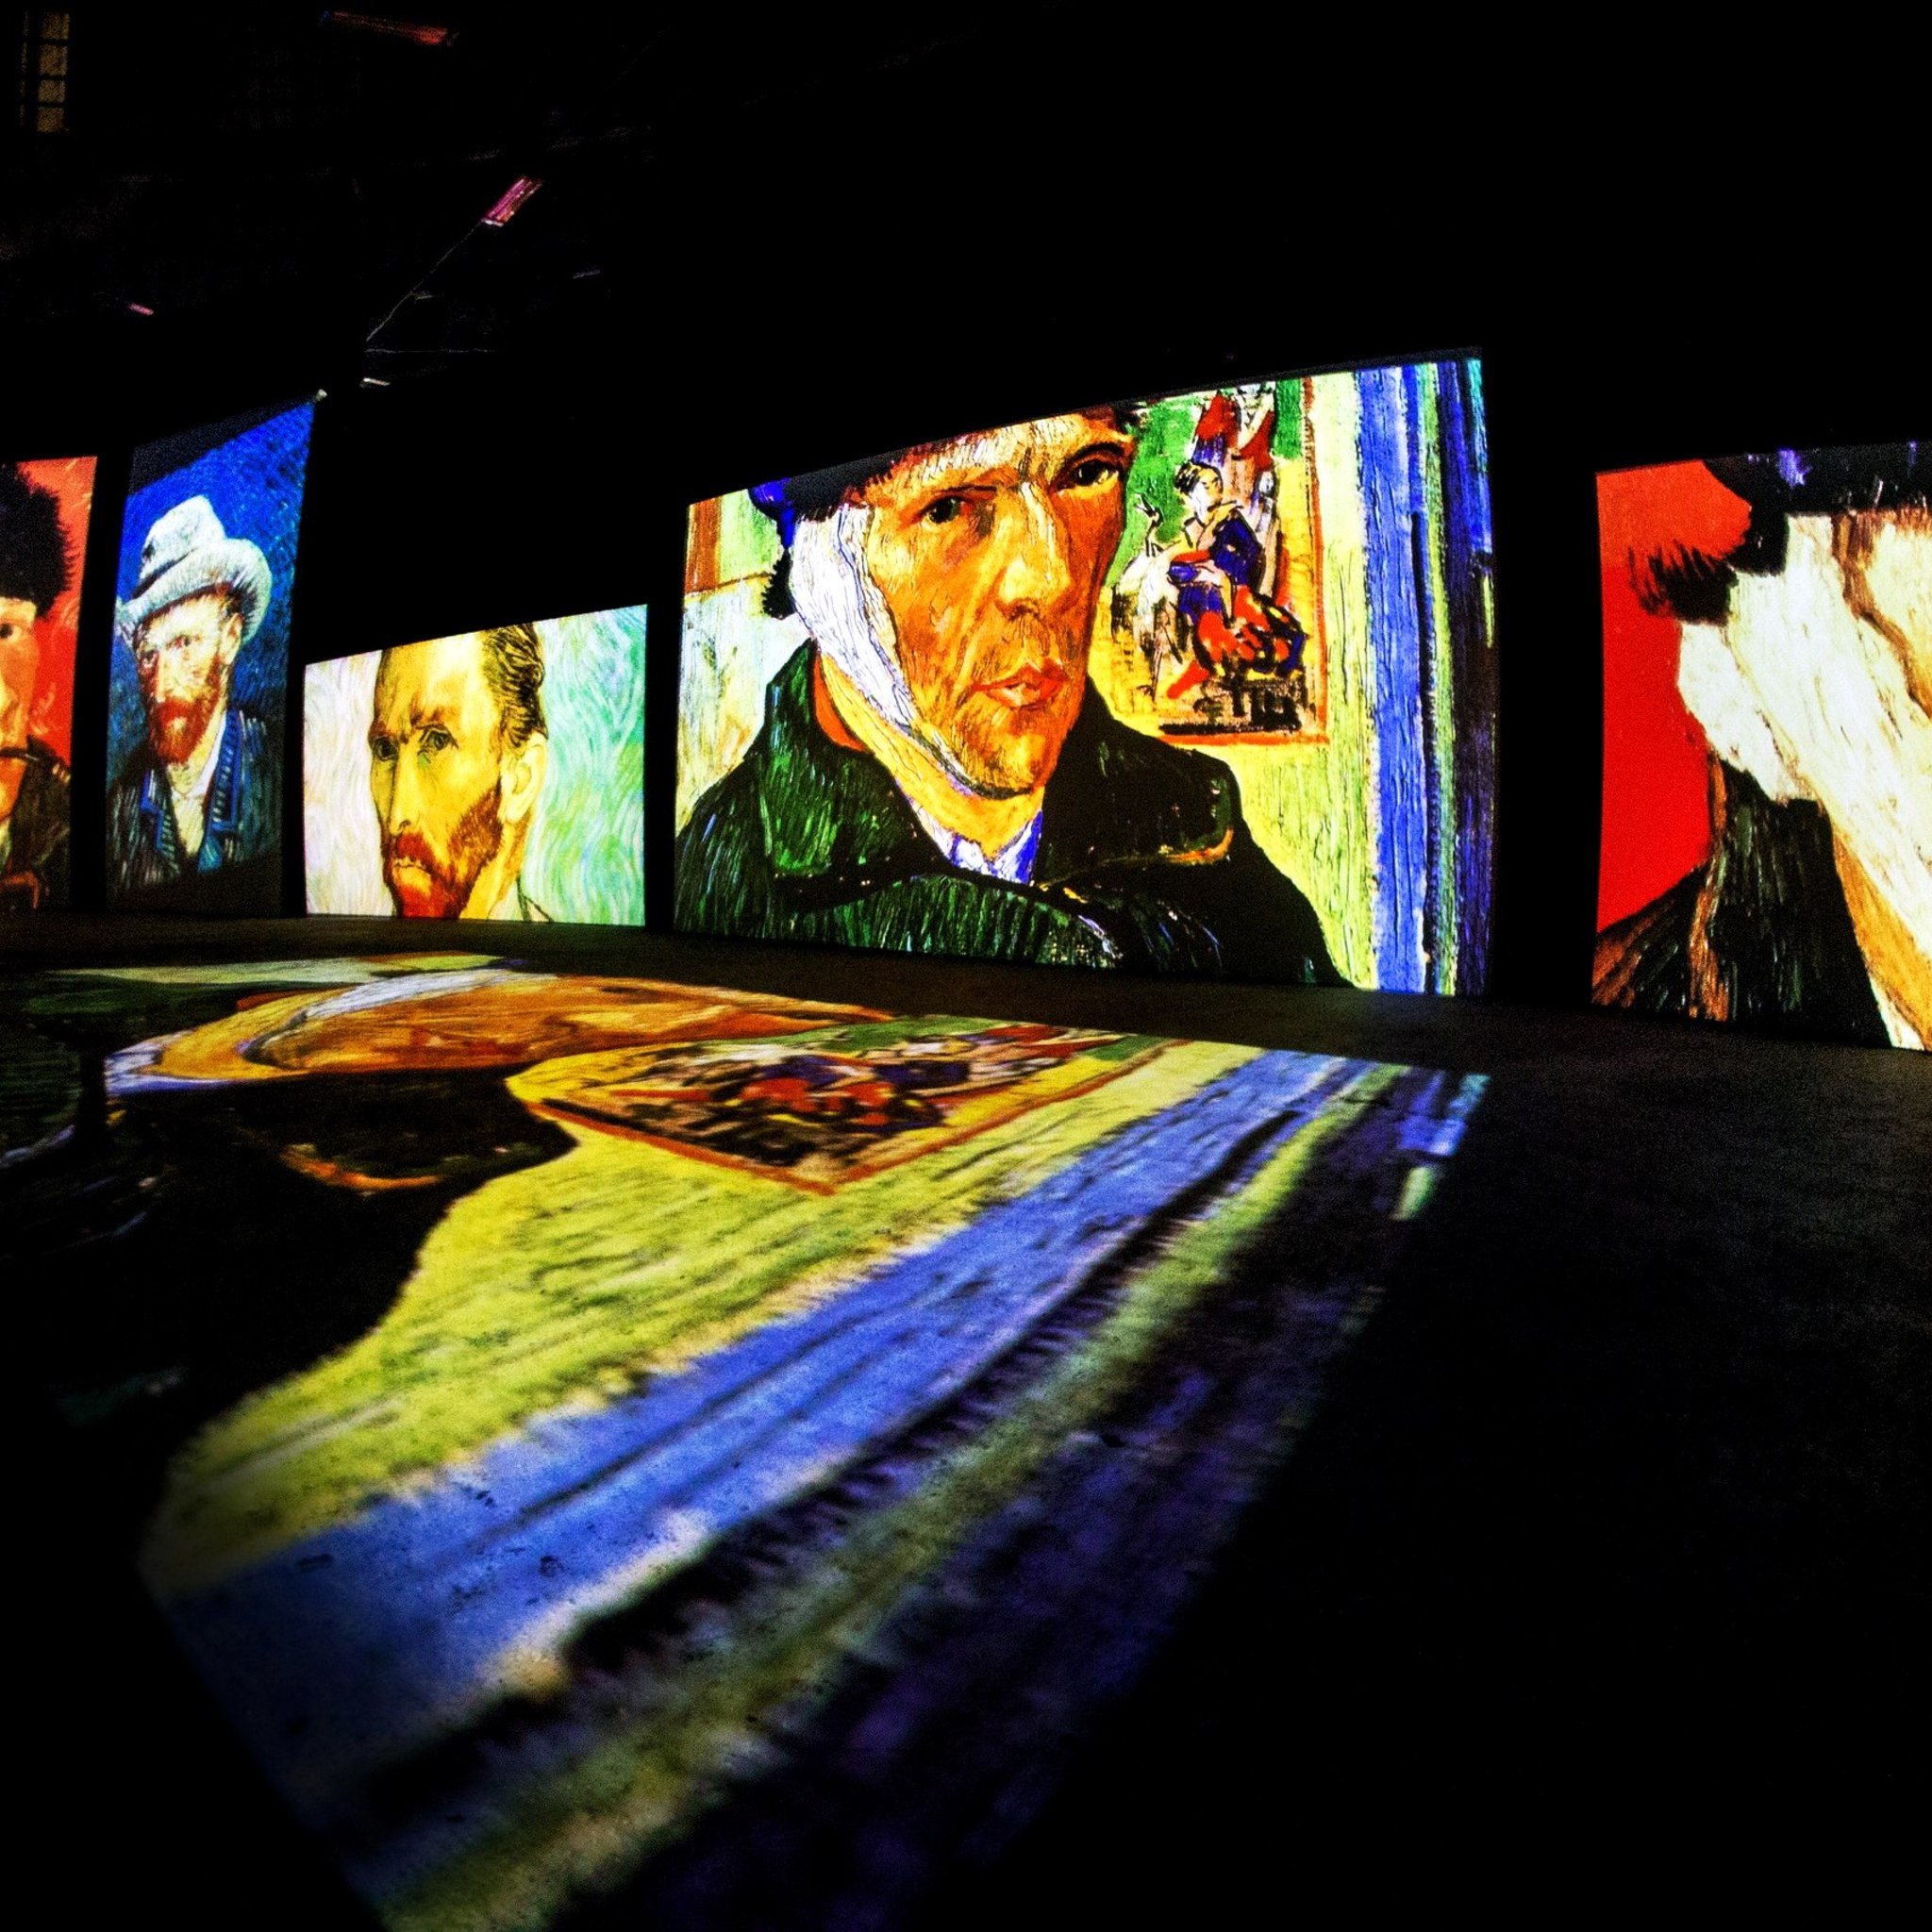 The exhibition Van Gogh – Live web